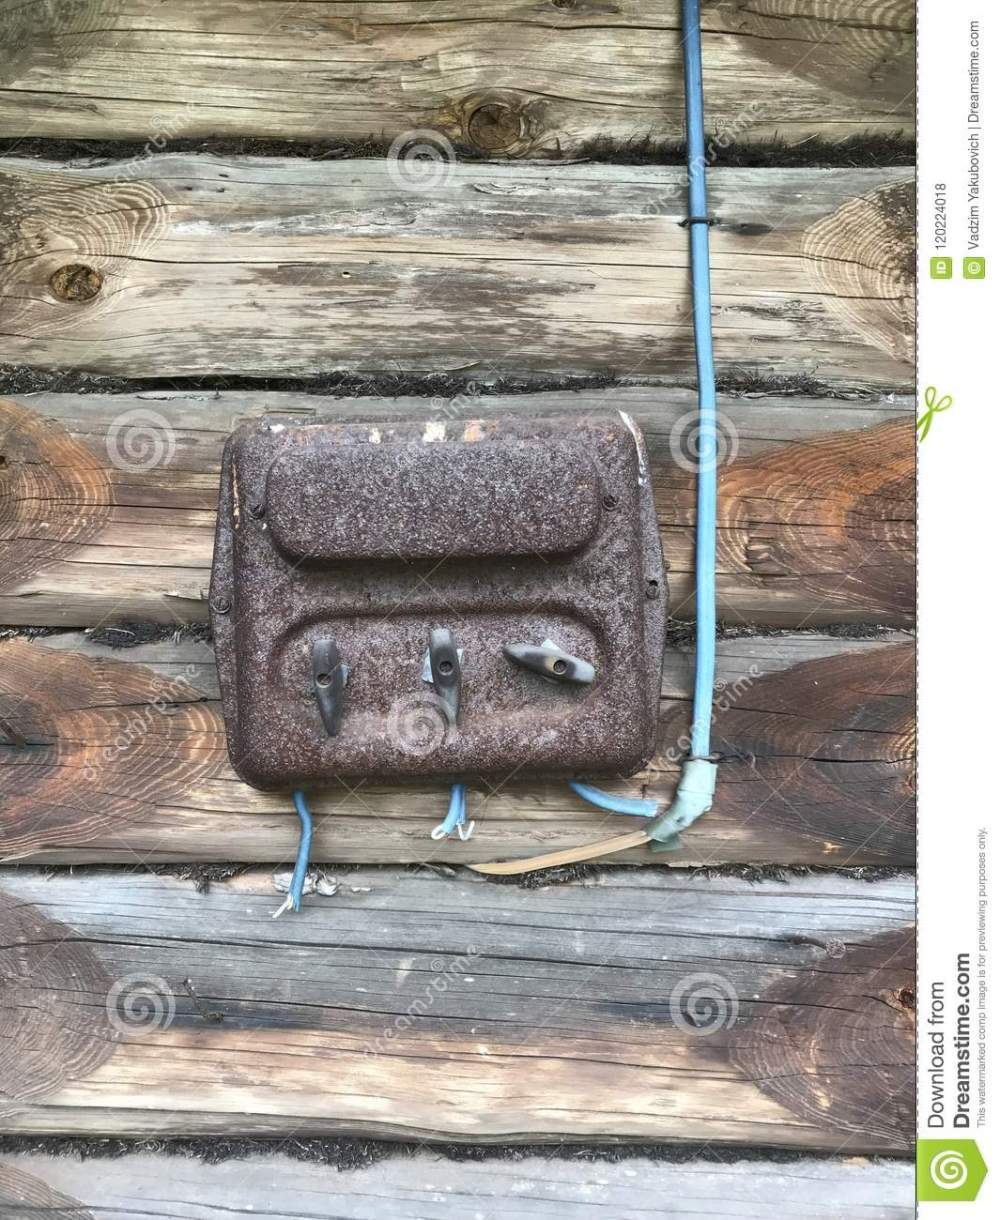 medium resolution of an old rust covered electric flap on the wall of a wooden shed electrical